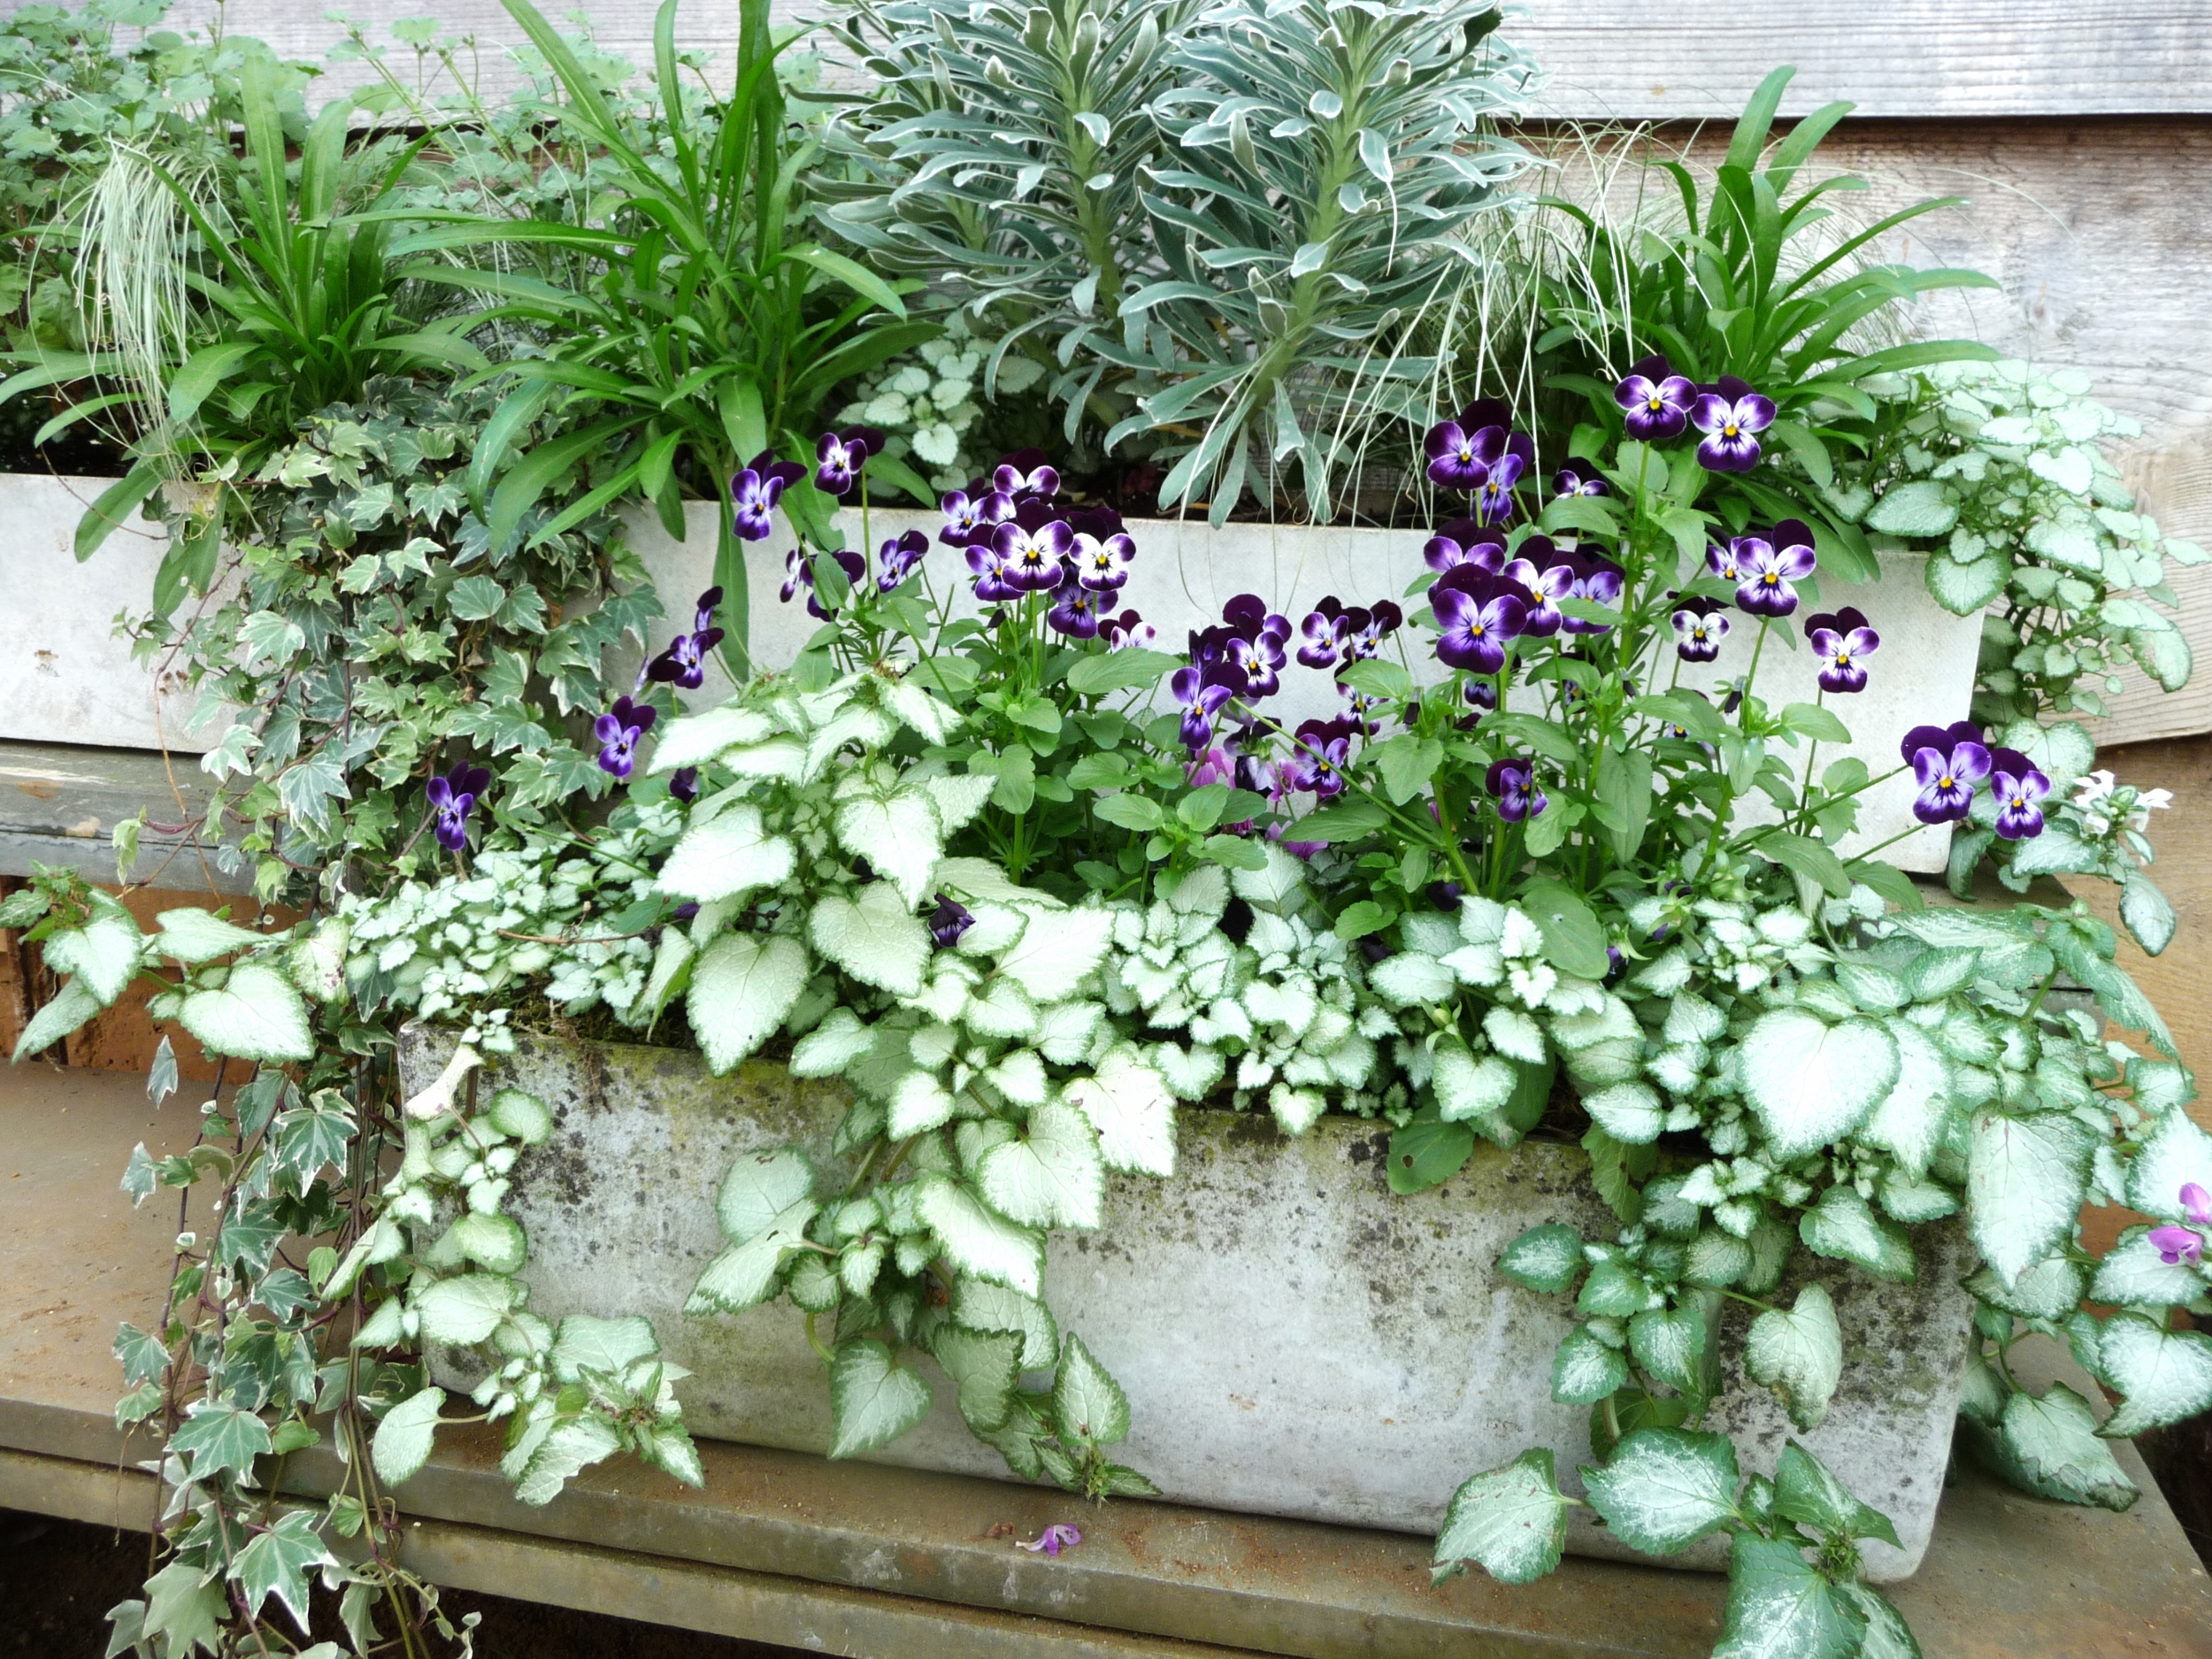 This beautiful trough of plants is outside the loos to welcome you! Look at the stunning mix of greens including the silvery greens and the way they complement each other and work so well with the purple violas